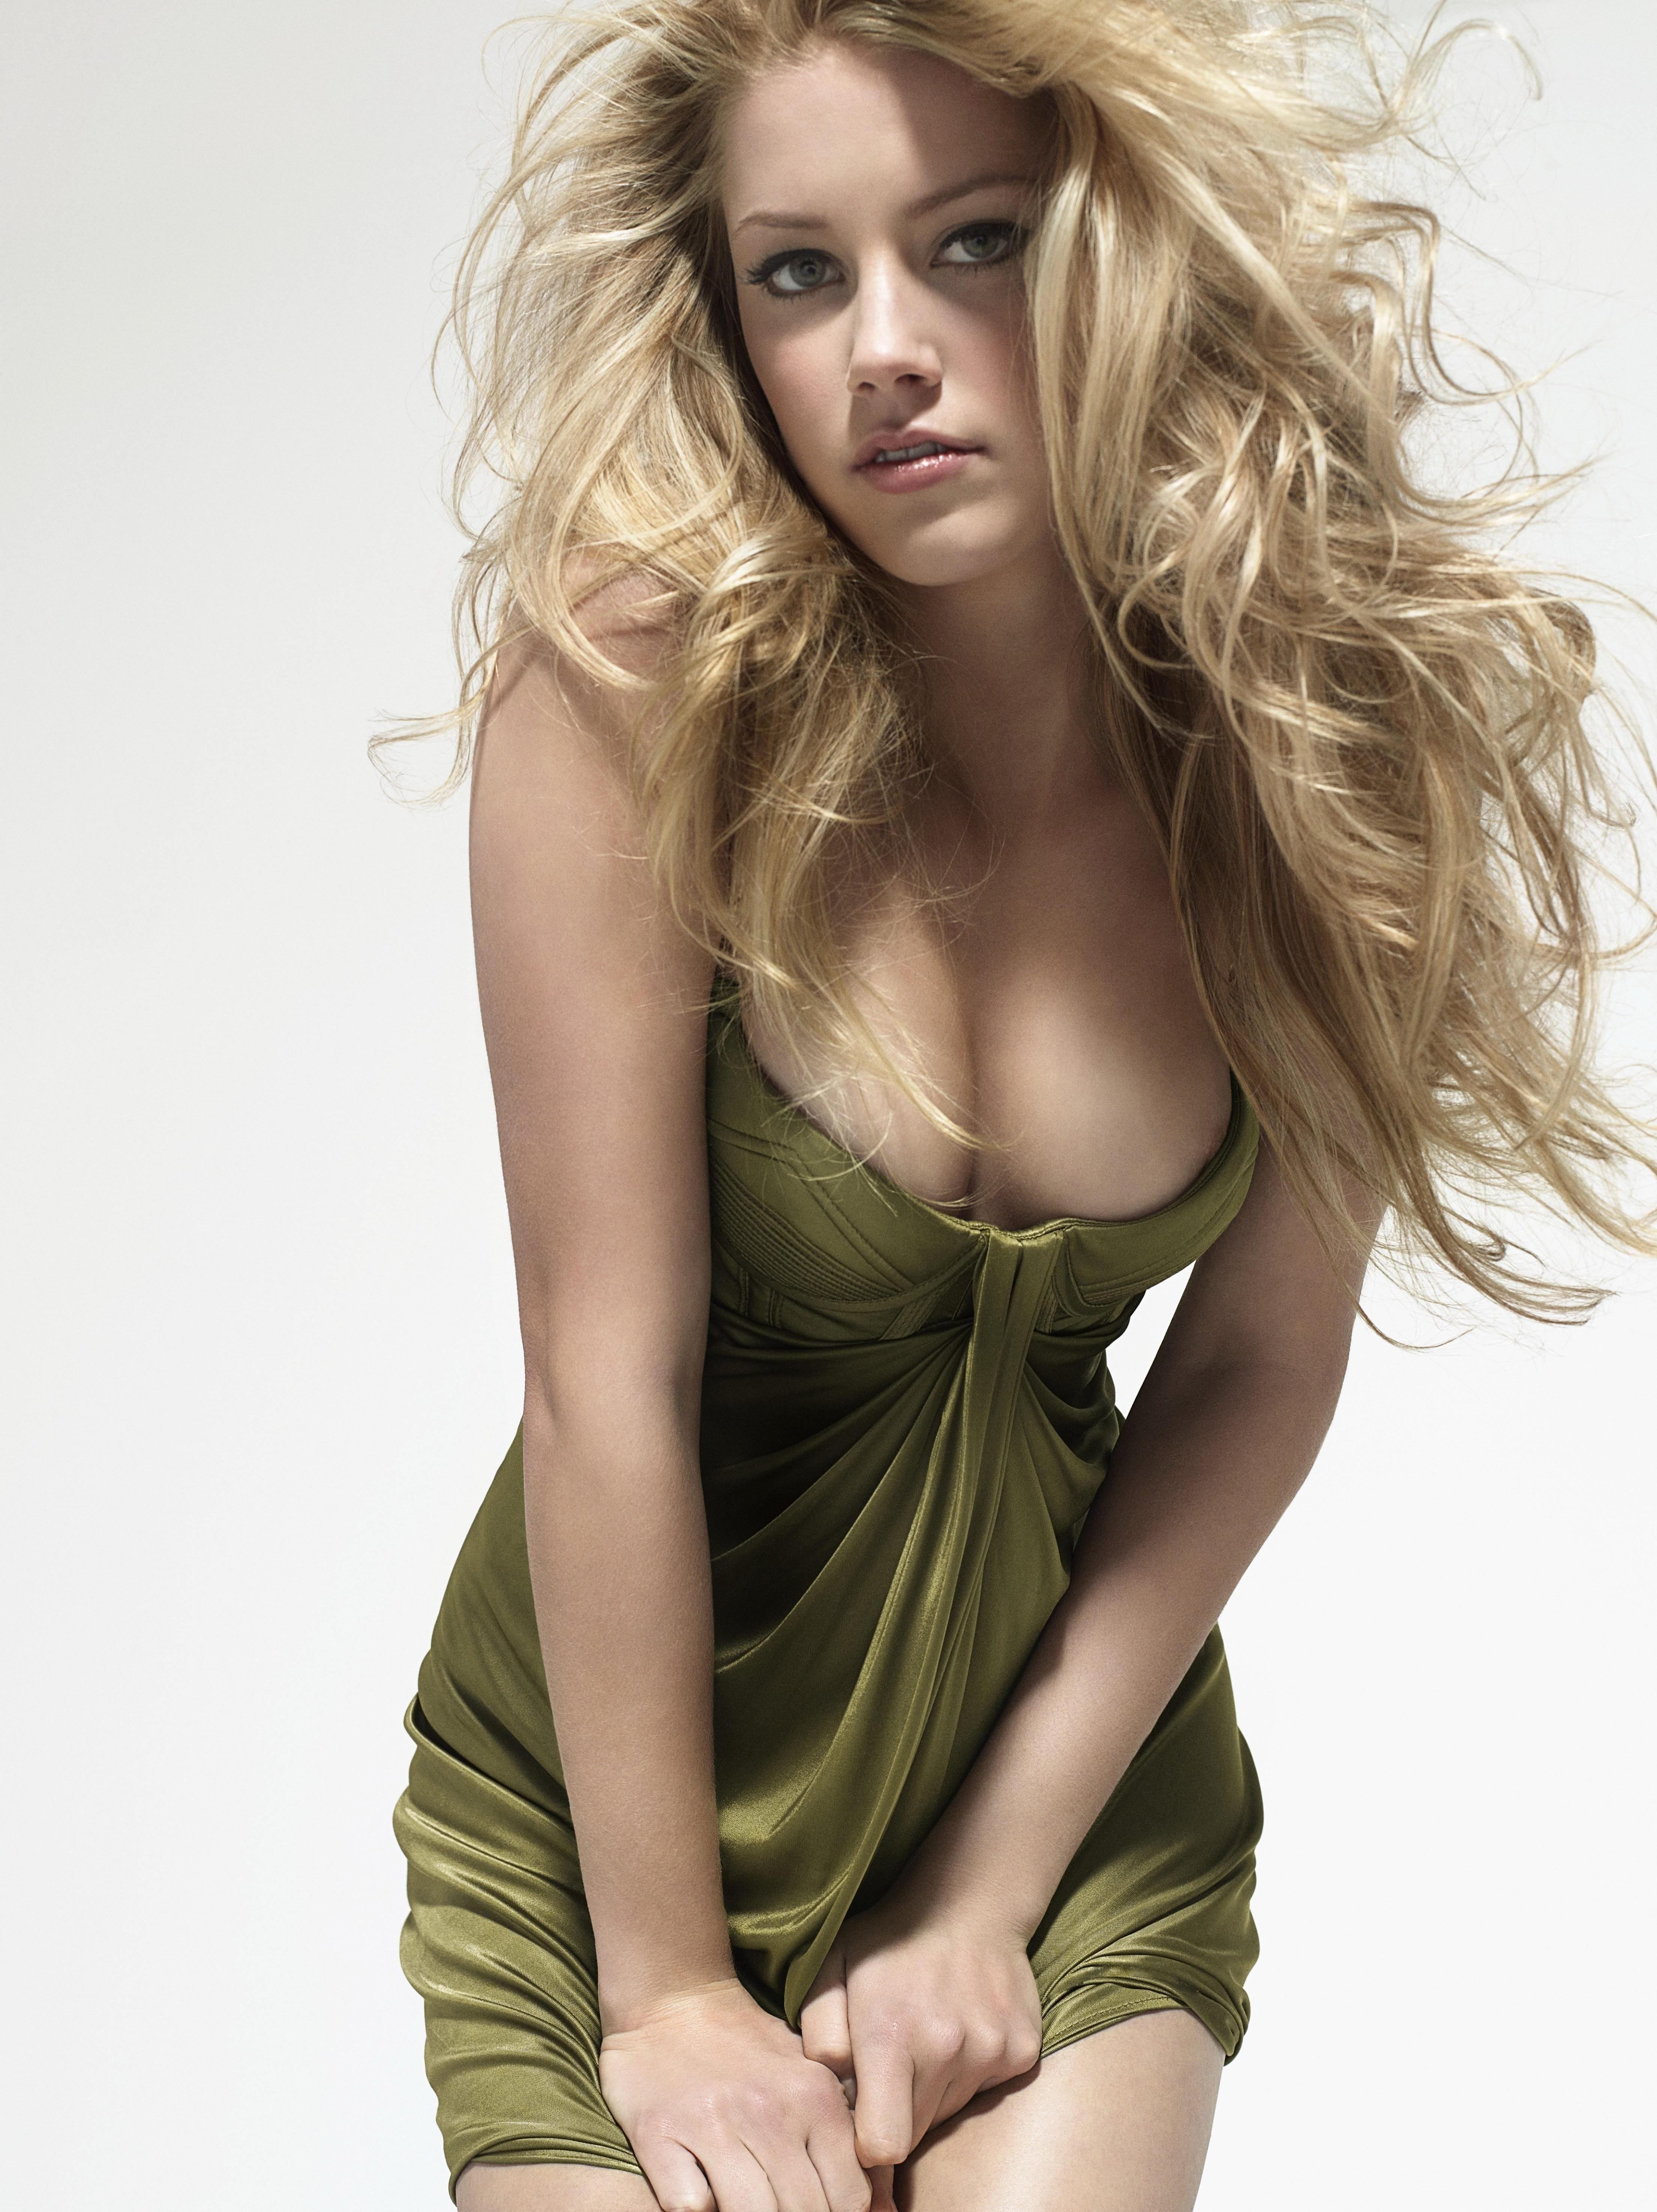 blondes woman Actress Celebrity HD Wallpaper